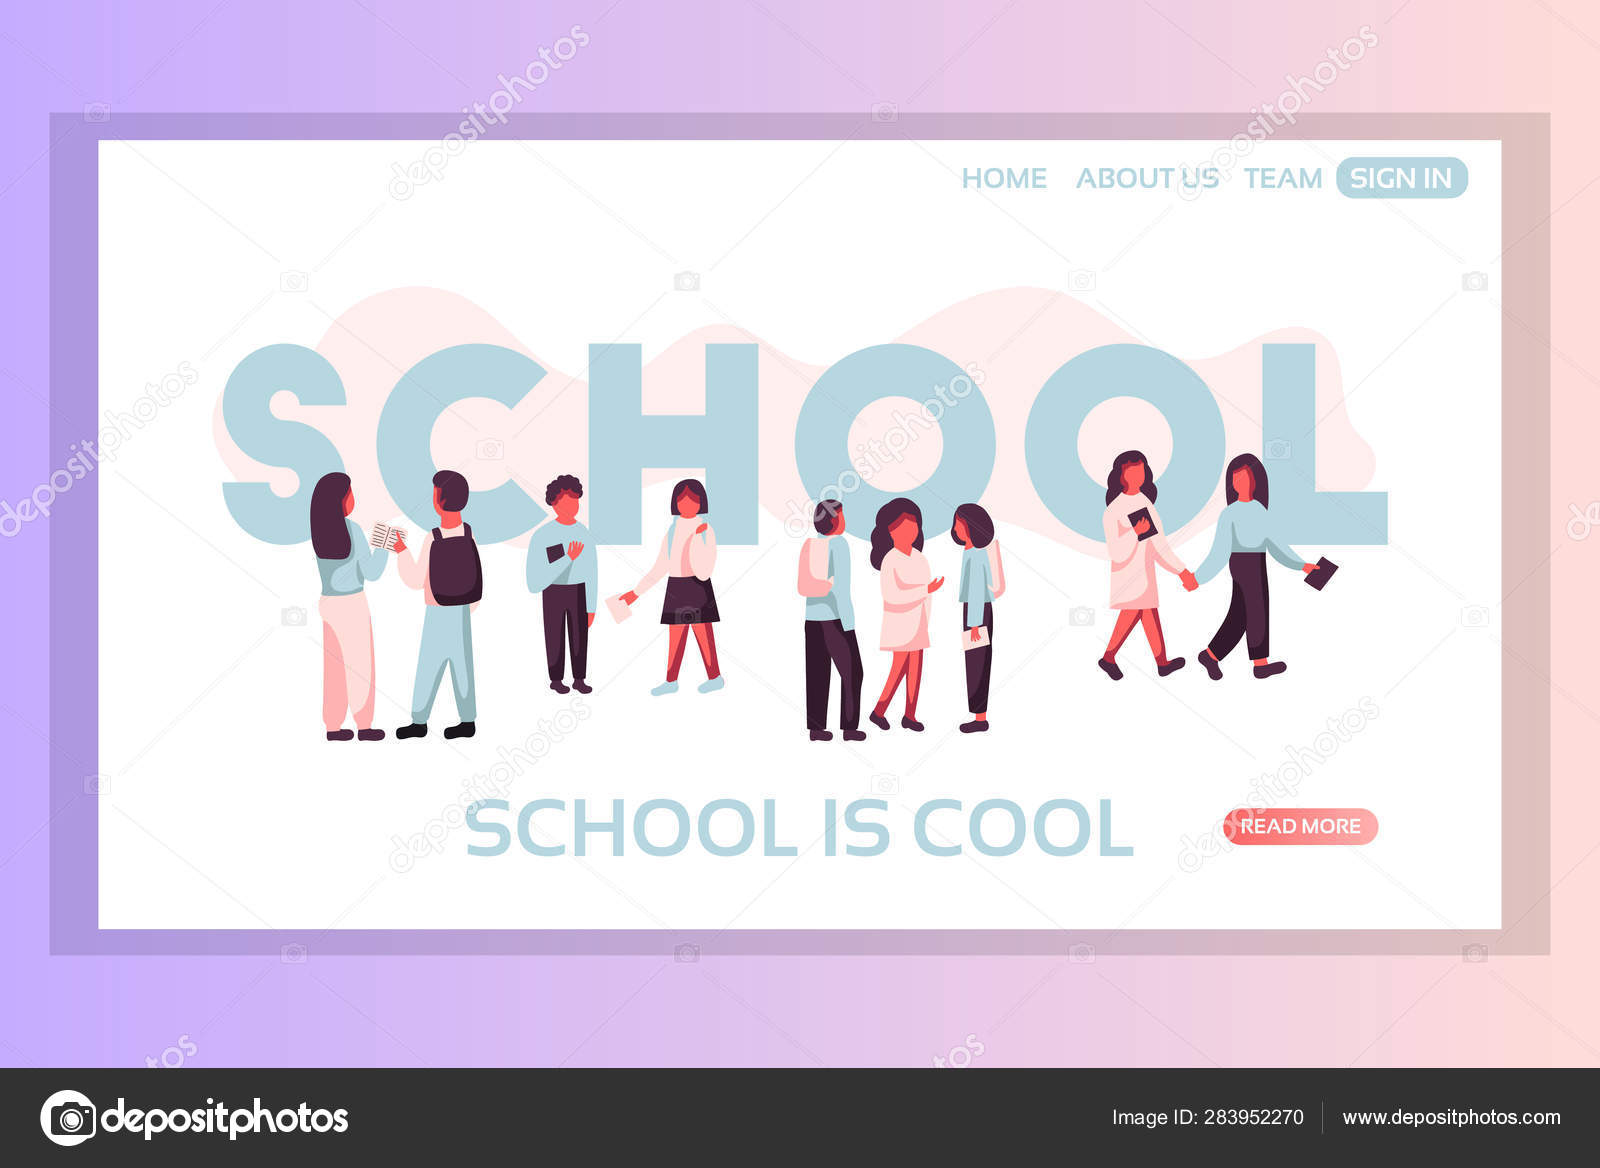 School Web Page Concepts Web Page Design Templates Set Of